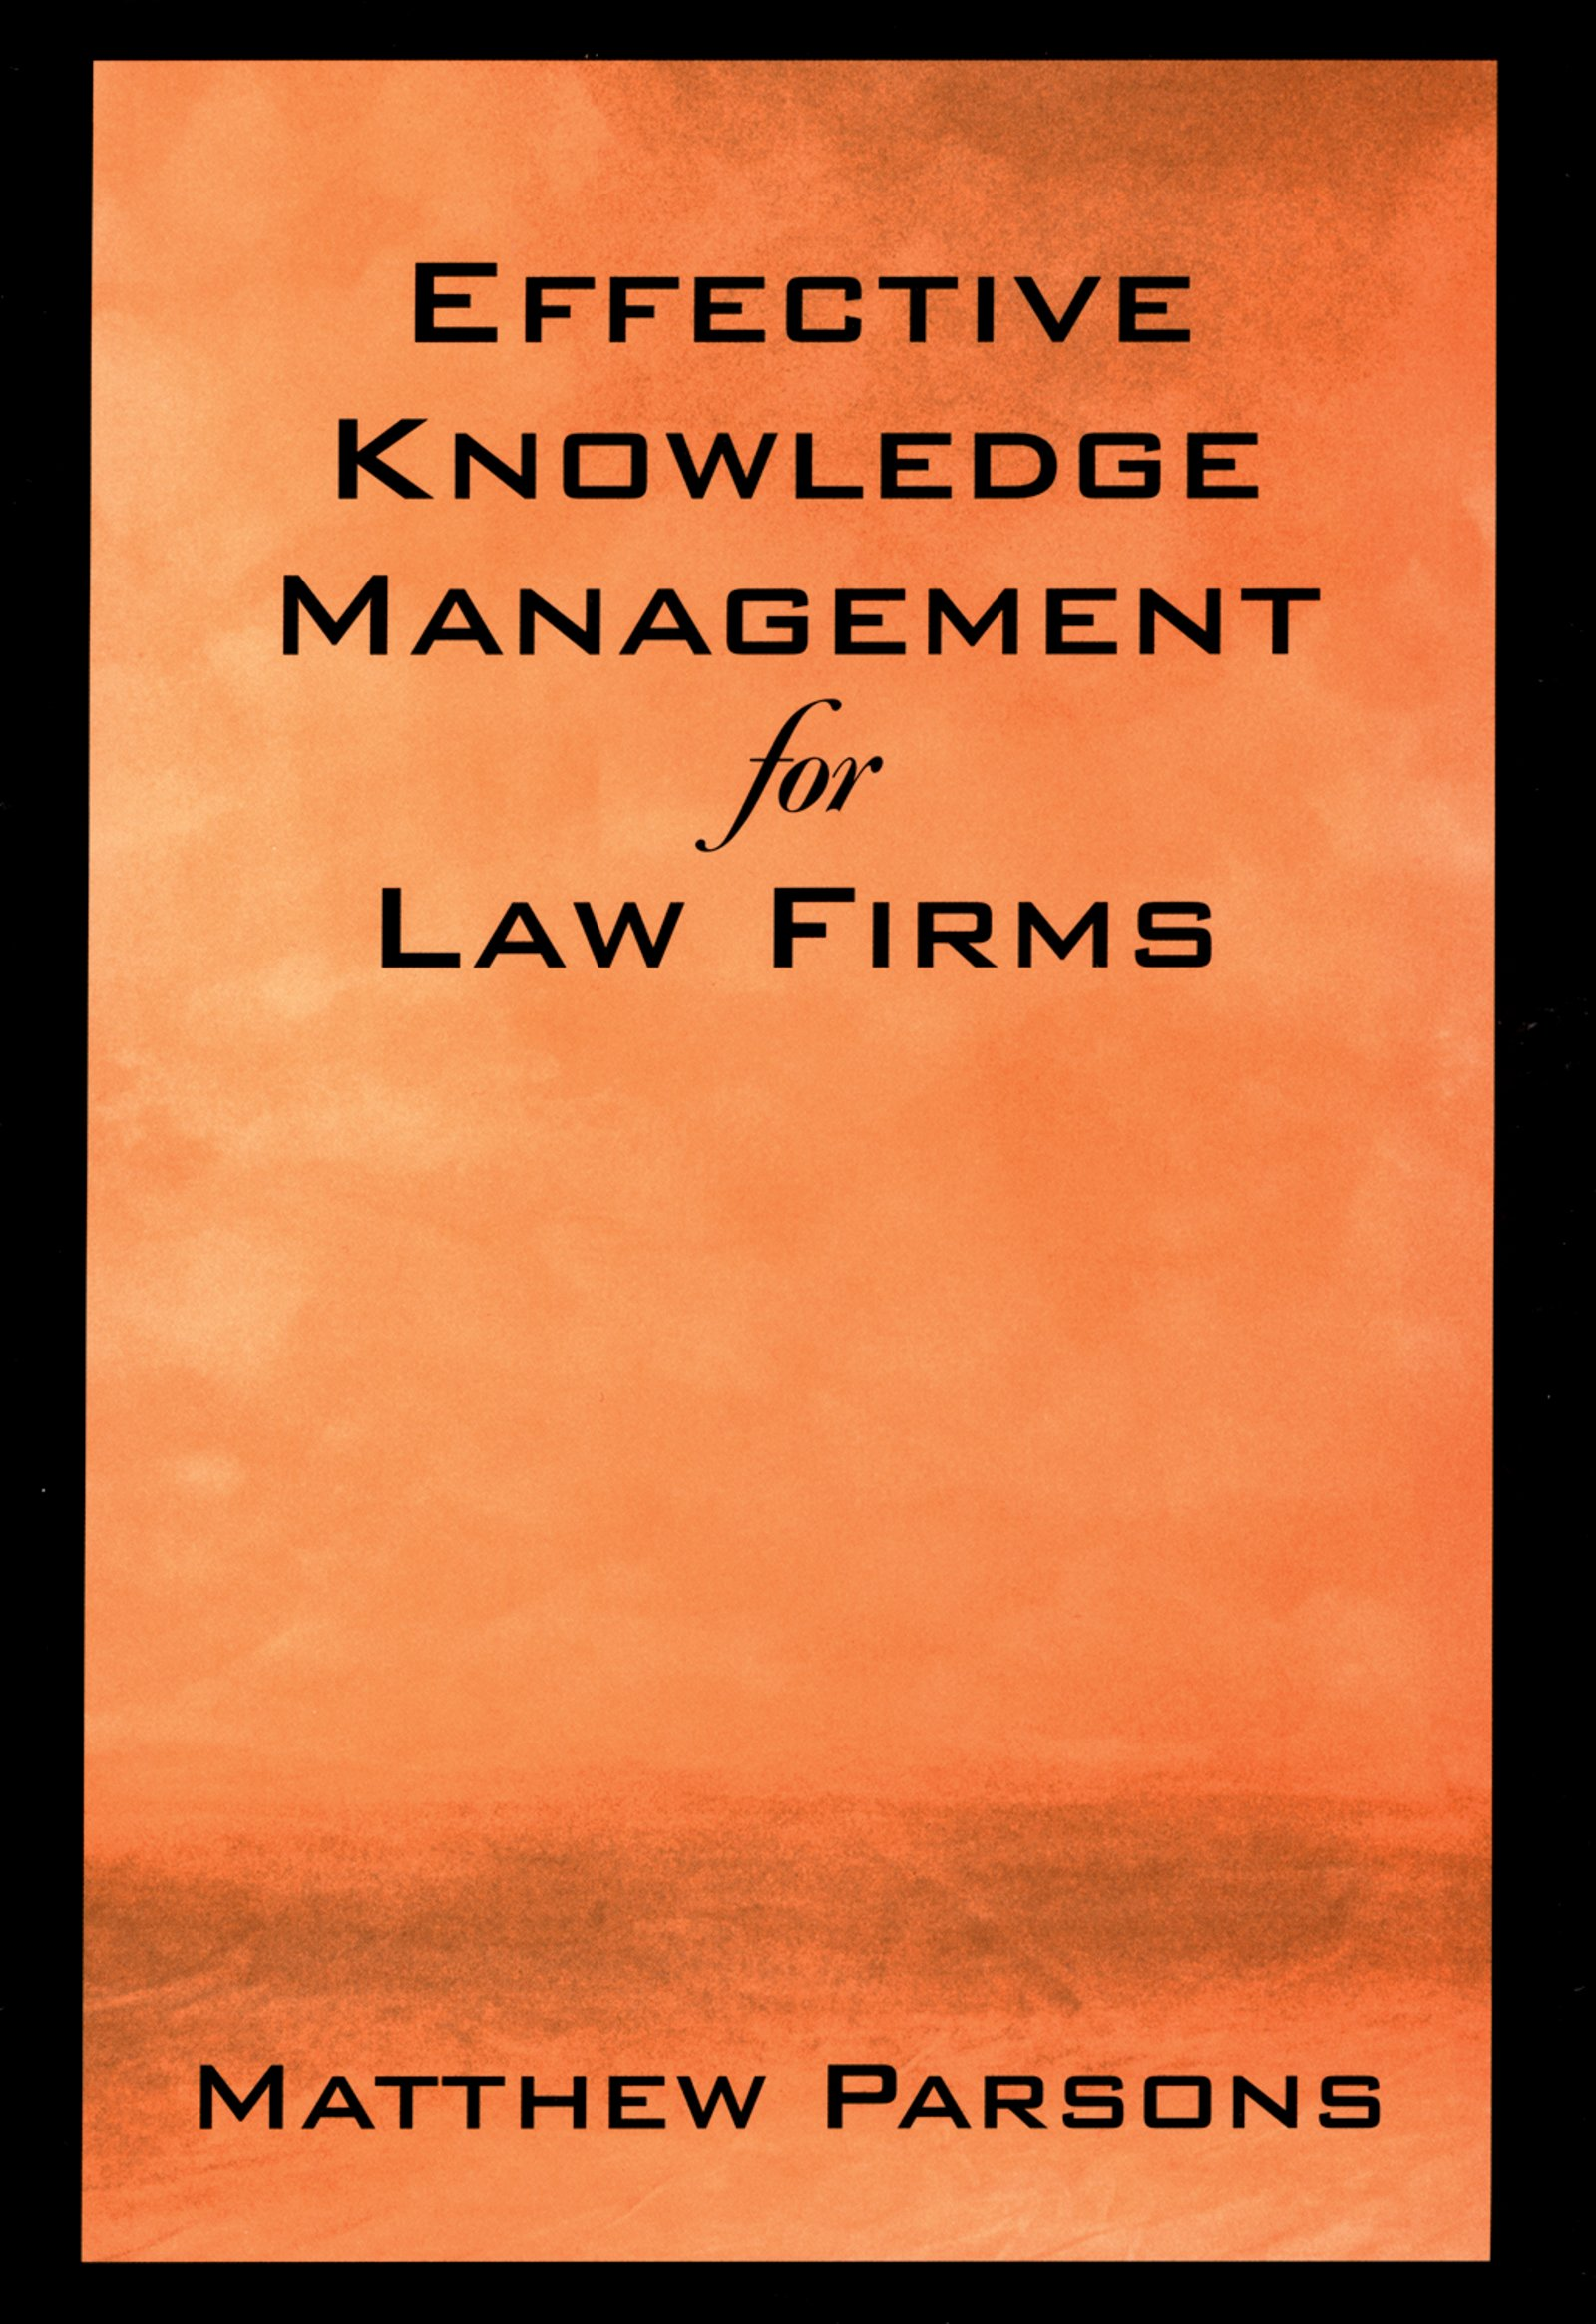 Download Ebook Effective Knowledge Management for Law Firms by Matthew Parsons Pdf